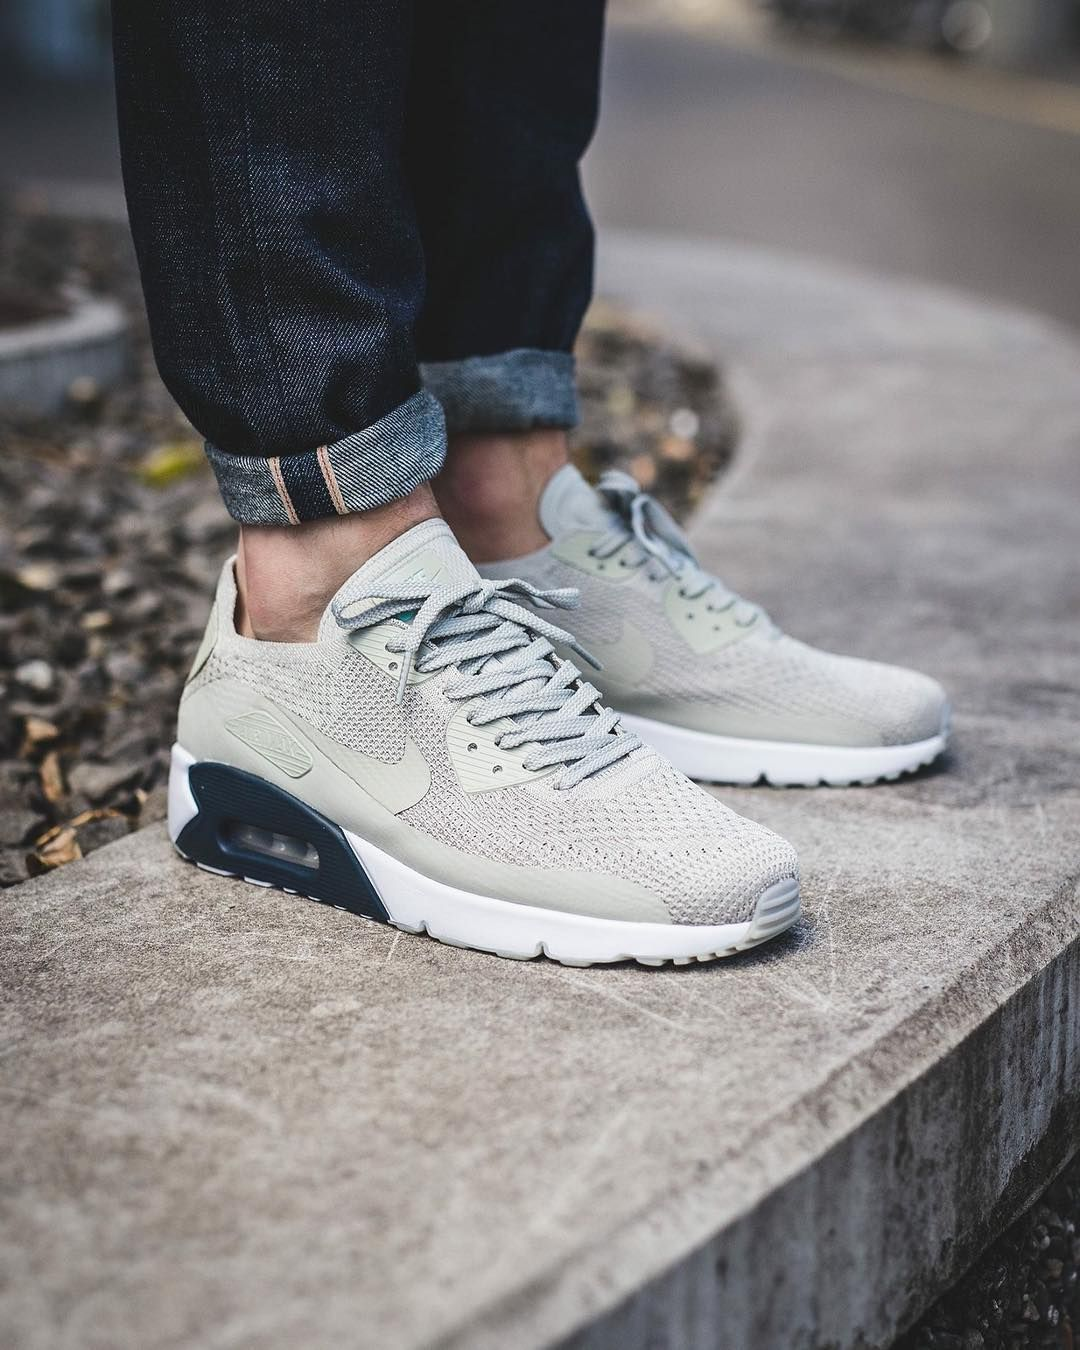 NIKE Chaussures Air Max 90 Ultra 2.0 Flyknit, Blanc, 9.5 US